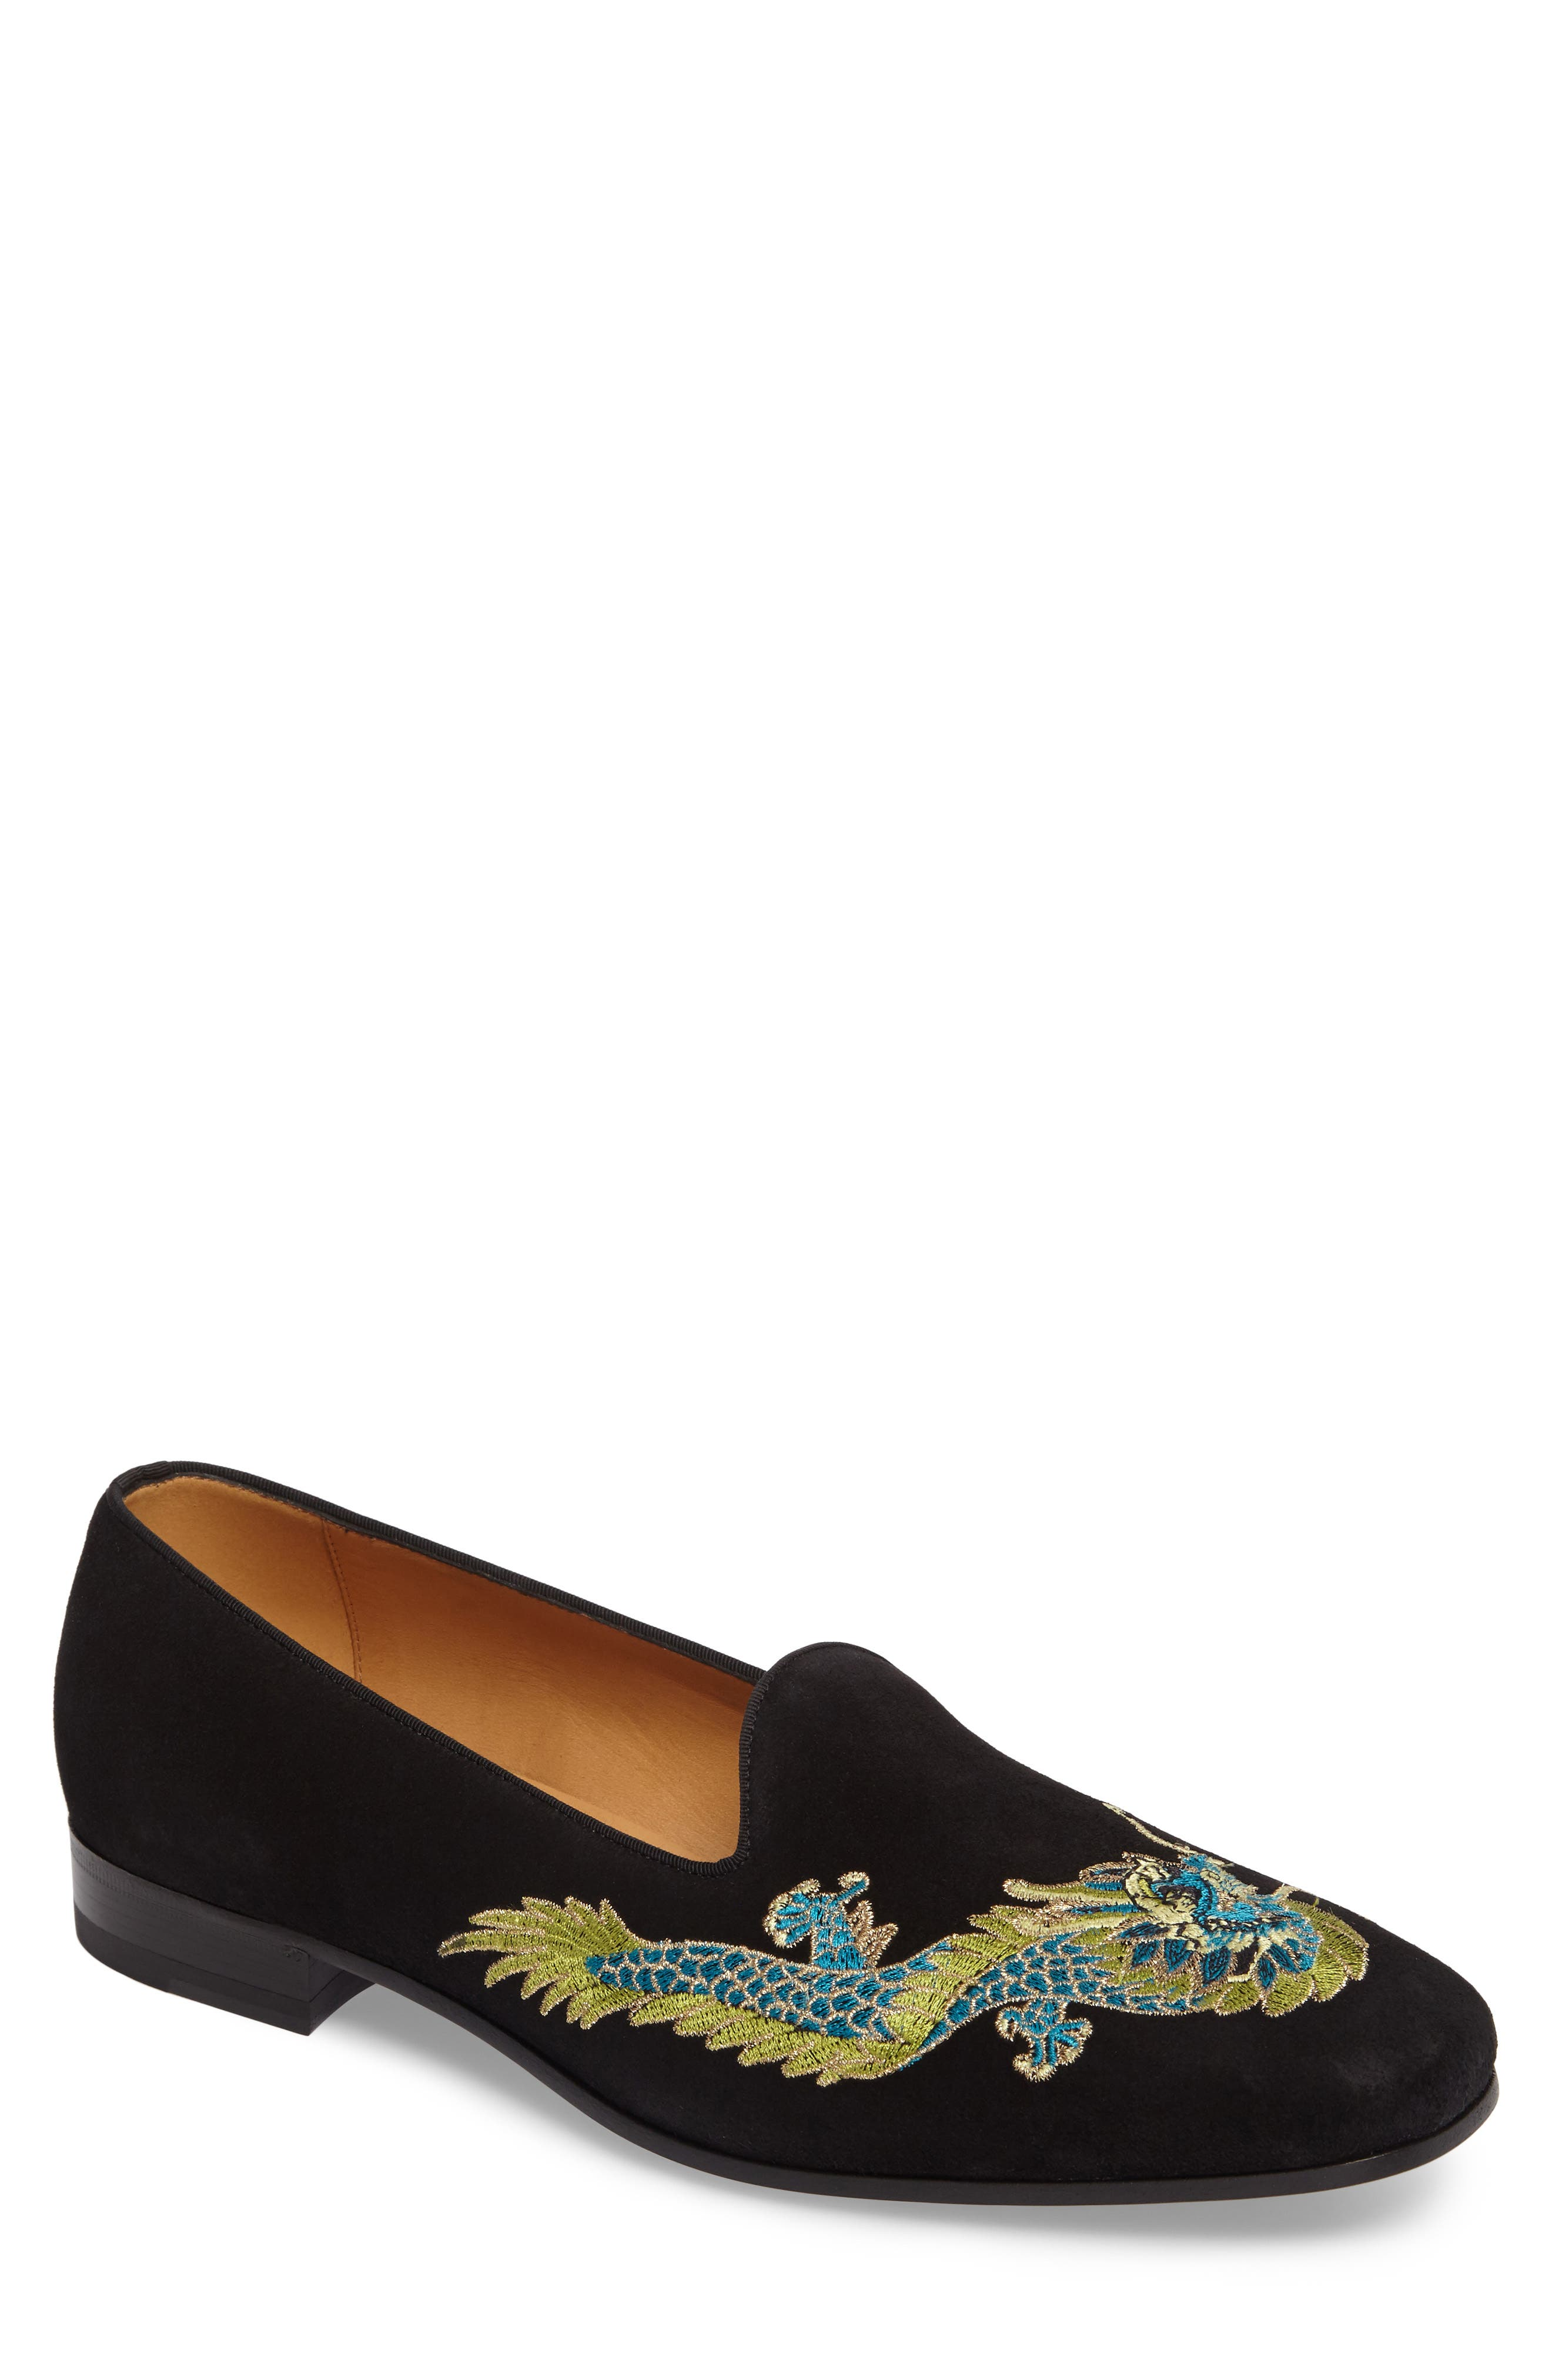 Dragon Embroidered Suede Loafer,                             Main thumbnail 1, color,                             BLACK SUEDE